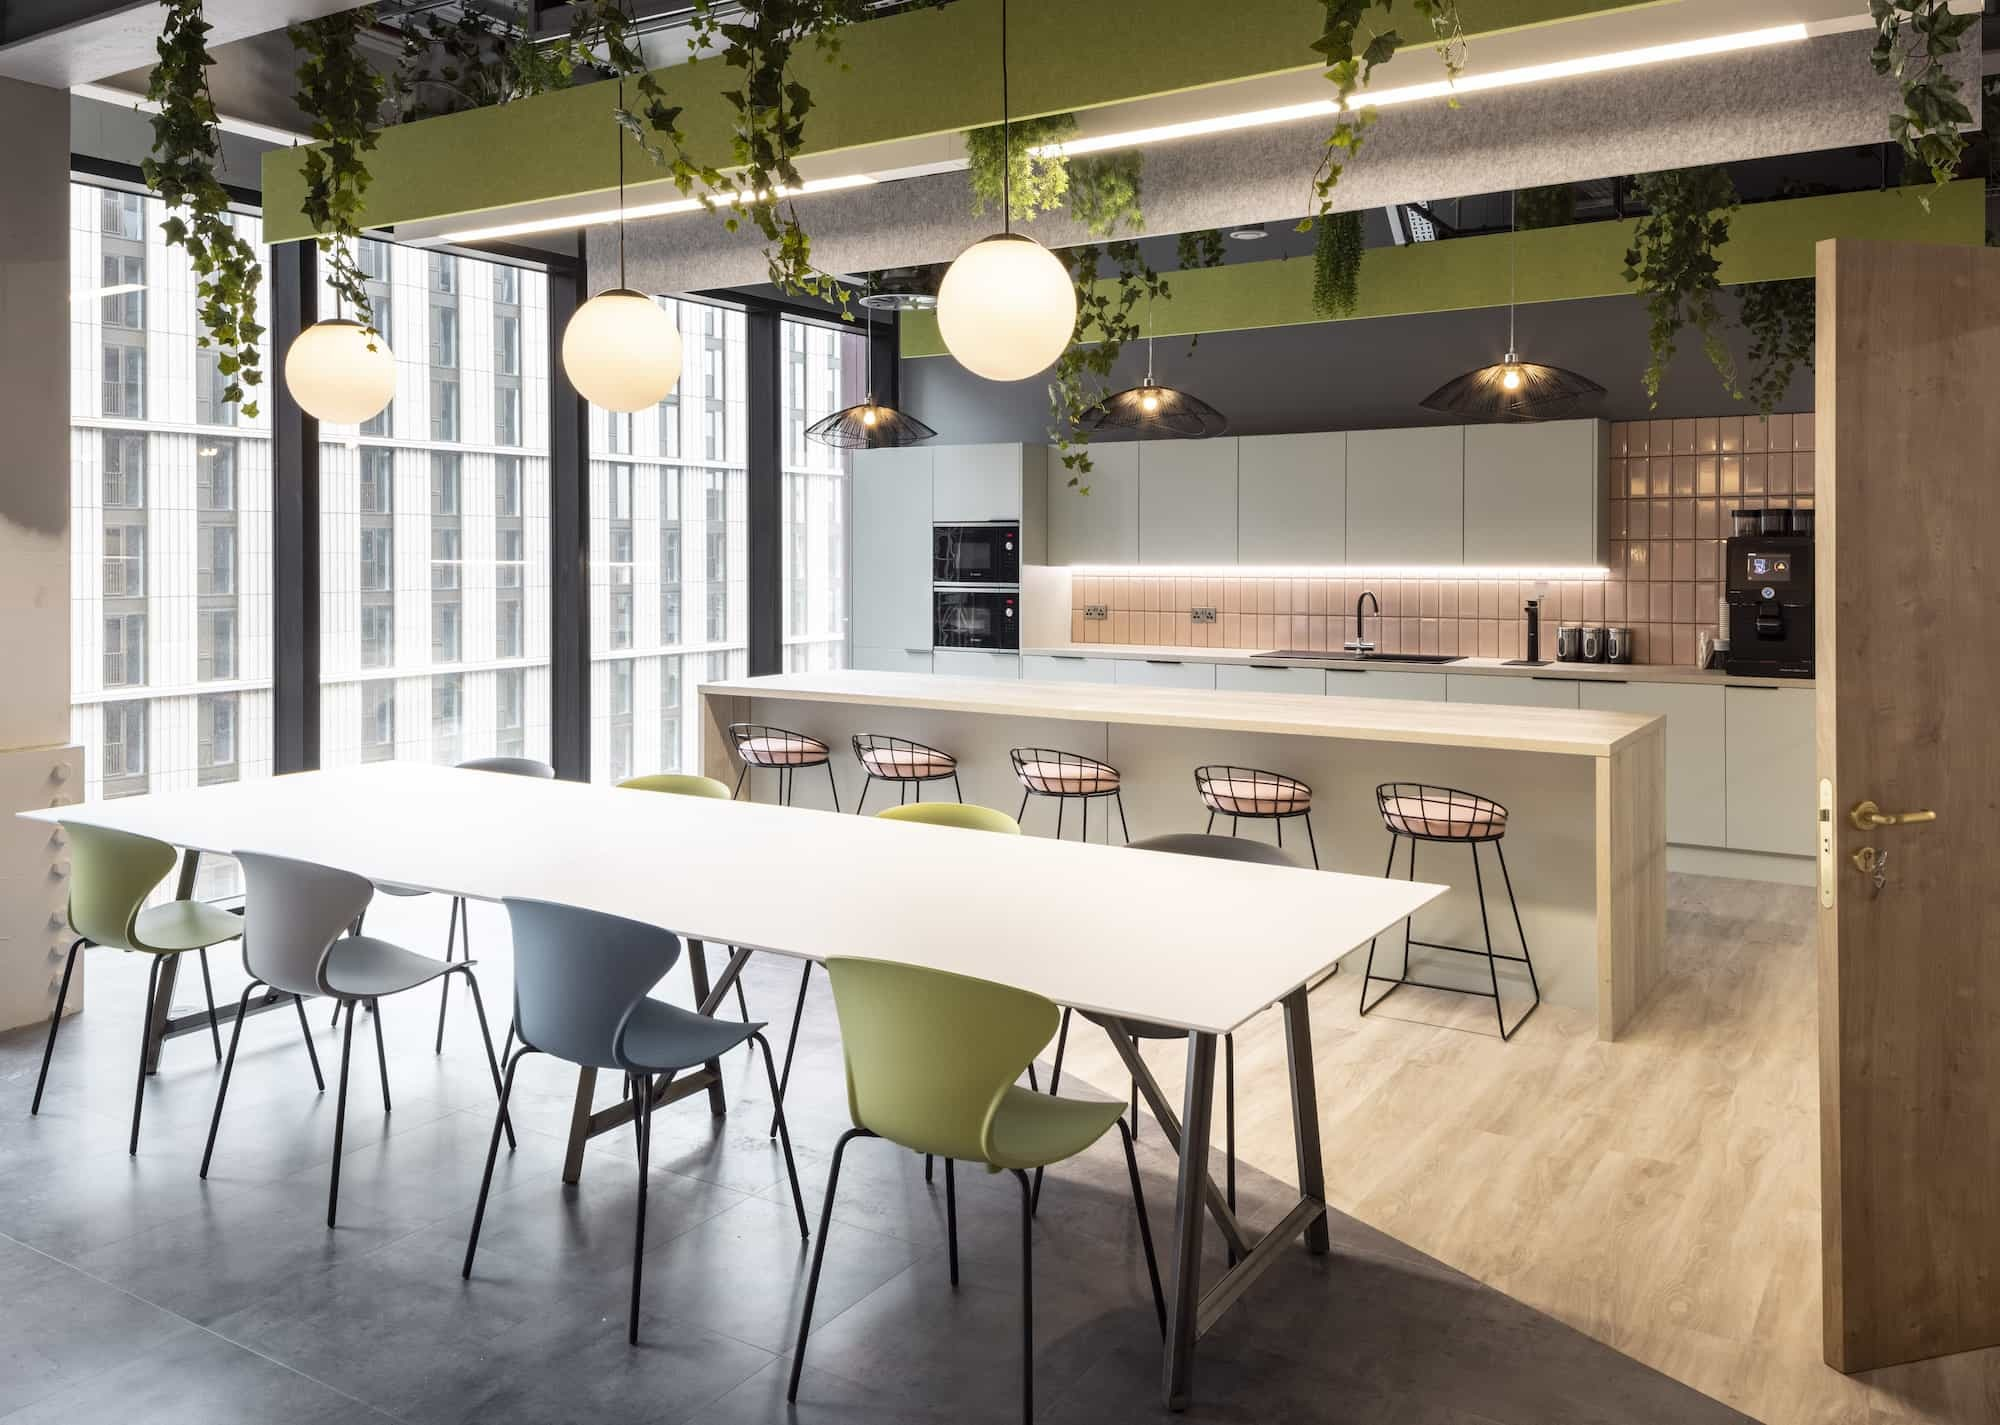 Mills Reeve office kitchen design and fit out